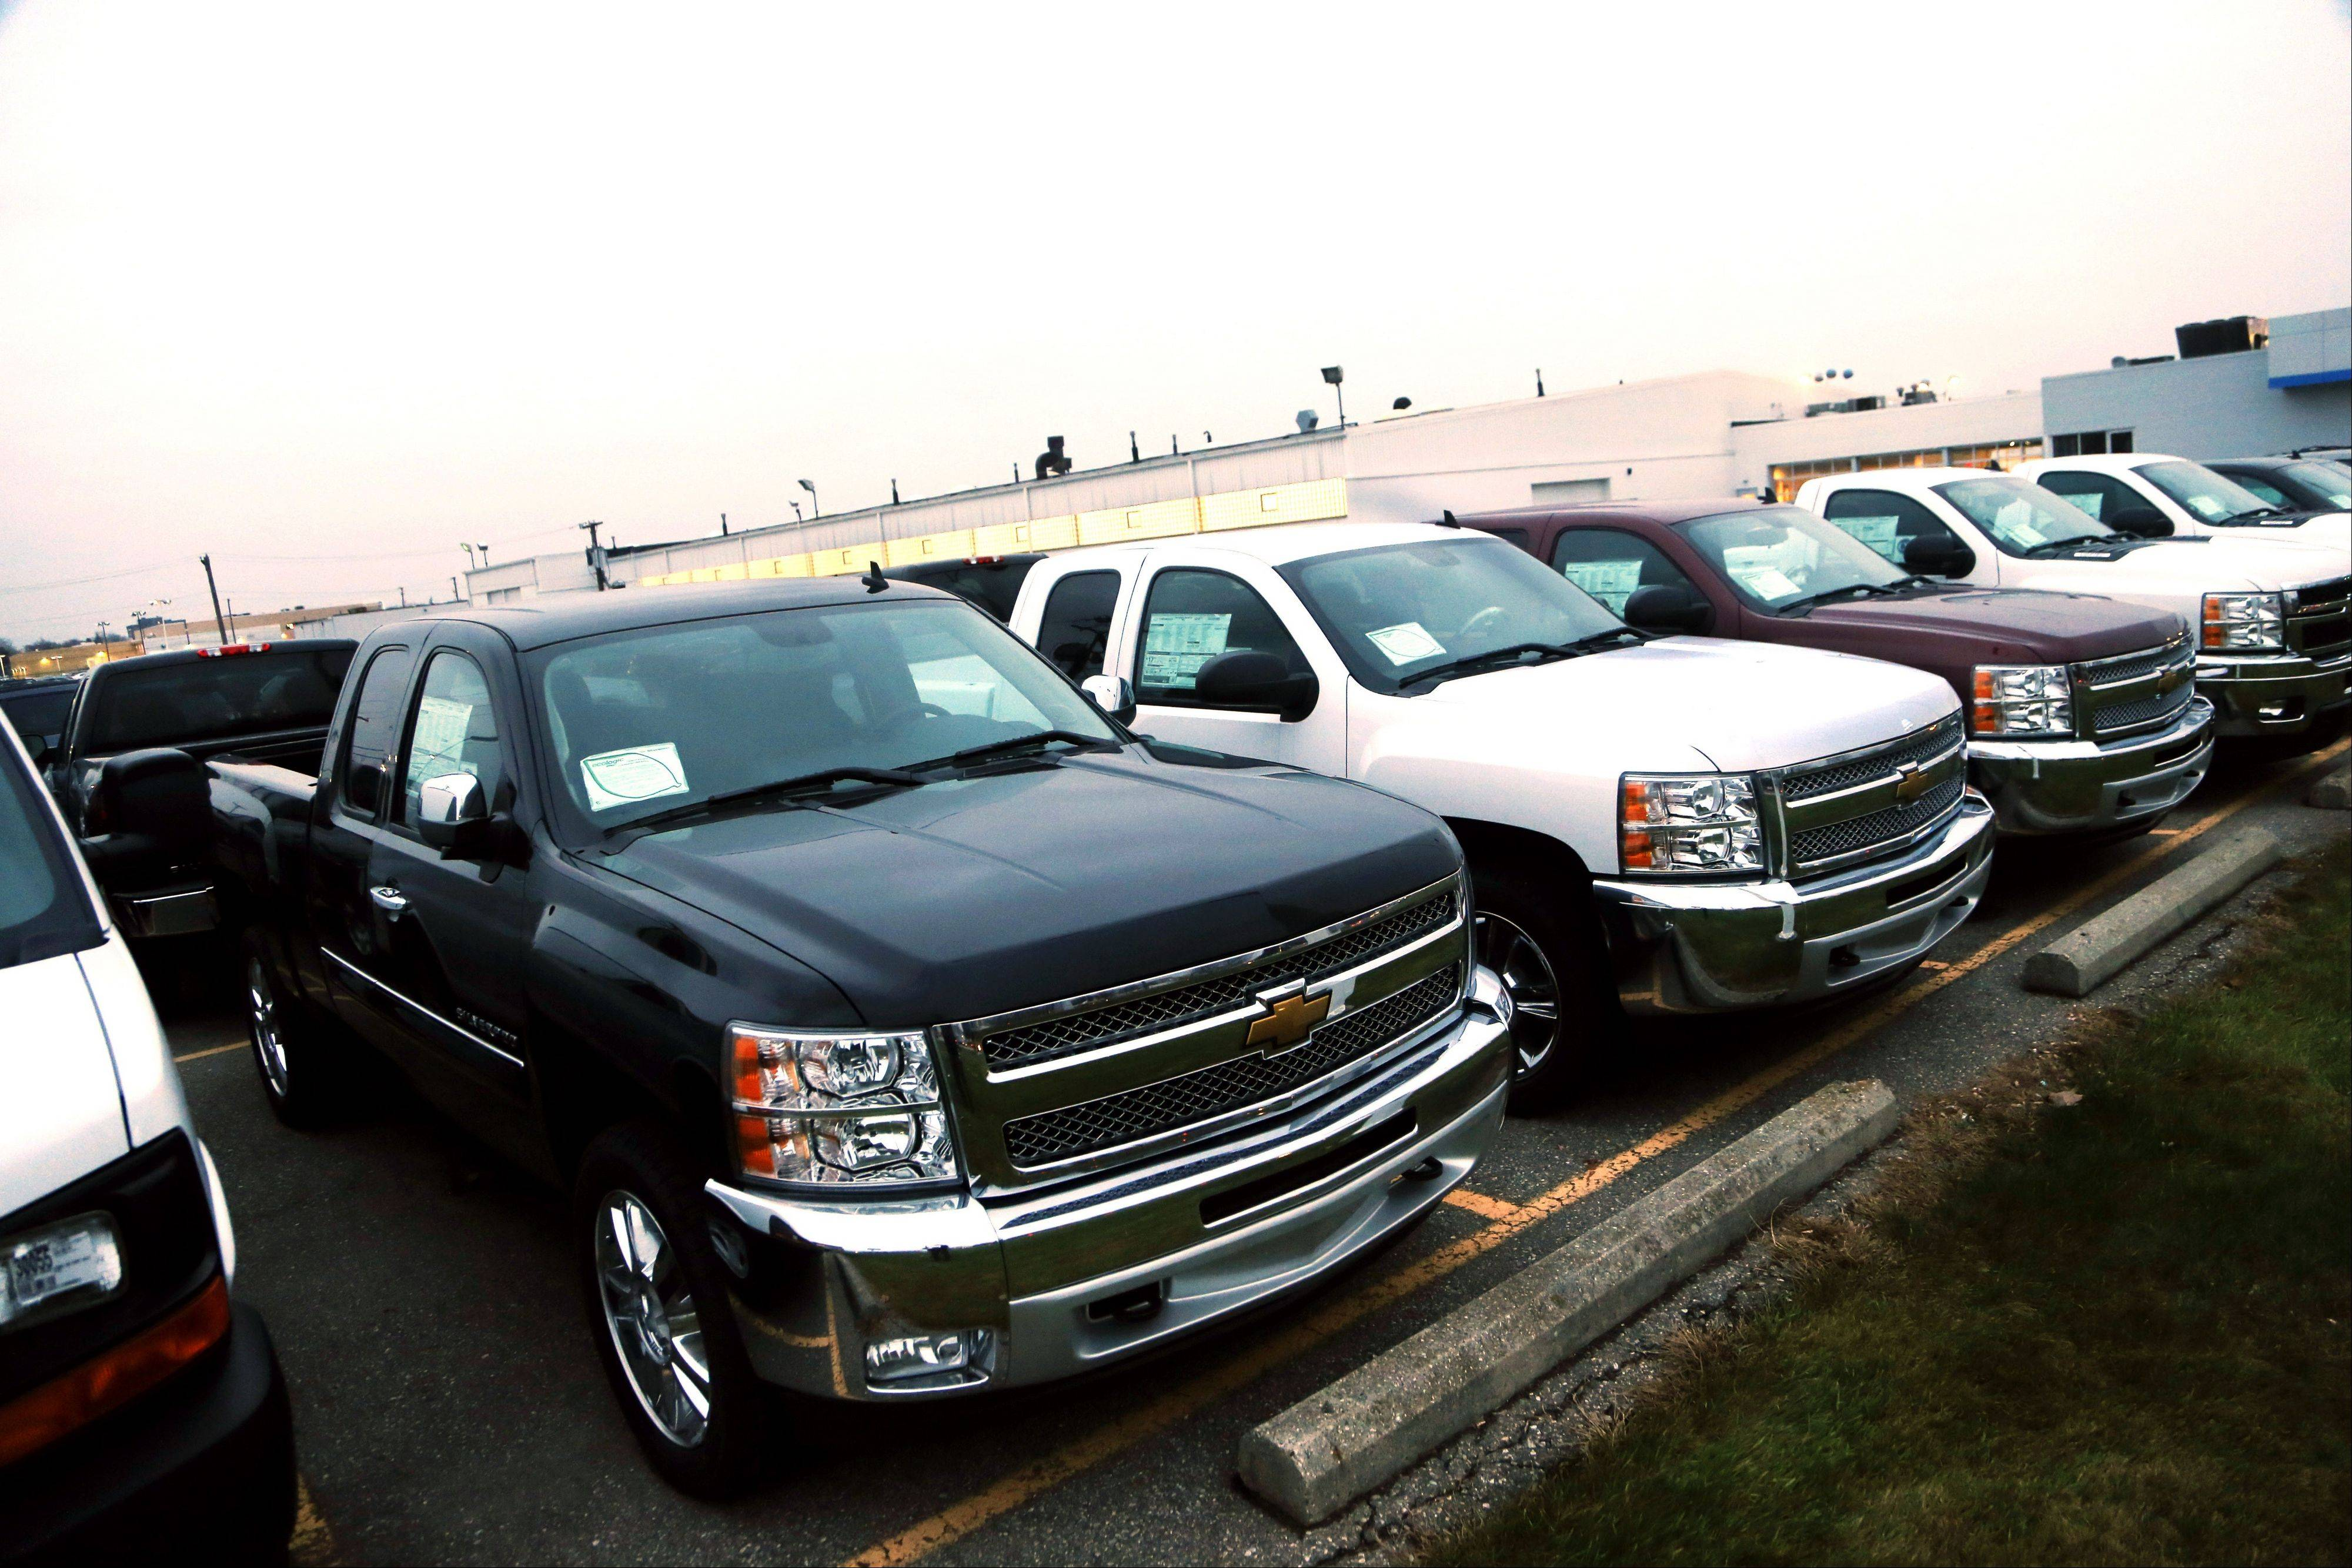 General Motors is offering generous deals to clear a growing inventory of Chevy and GMC pickup trucks. It�s matching or beating deals offered by Ford and Chrysler. That, plus low interest rates, sweet lease deals and abundant financing, is good news for truck buyers.